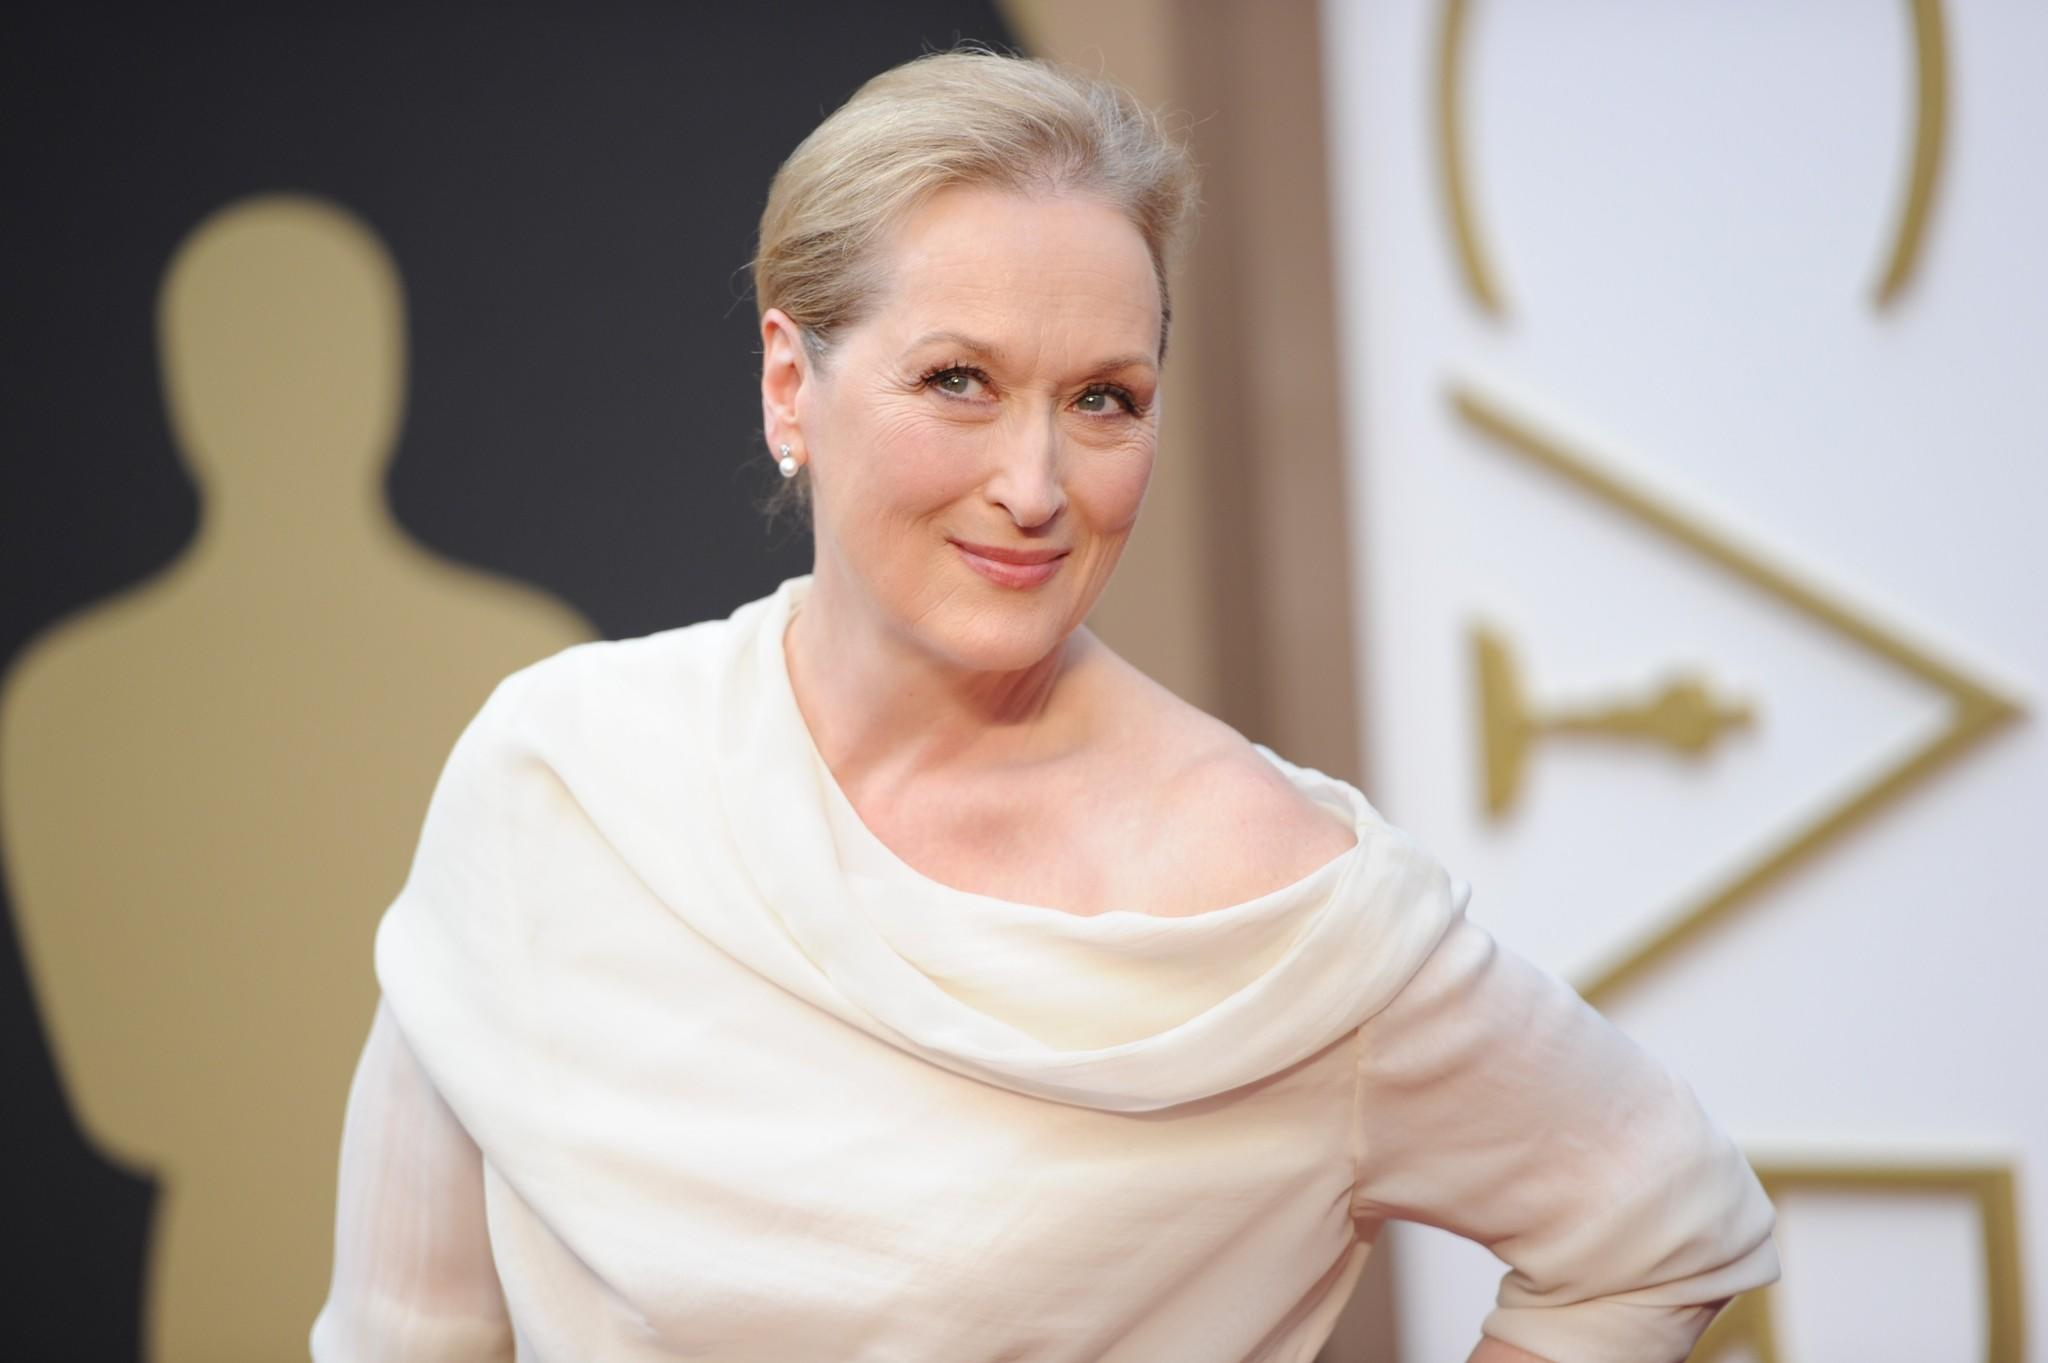 """Meryl Streep, shown here at the 86th Academy Awards, is set to play the lead role in the rock 'n' roll dramedy """"Ricki and the Flash."""""""